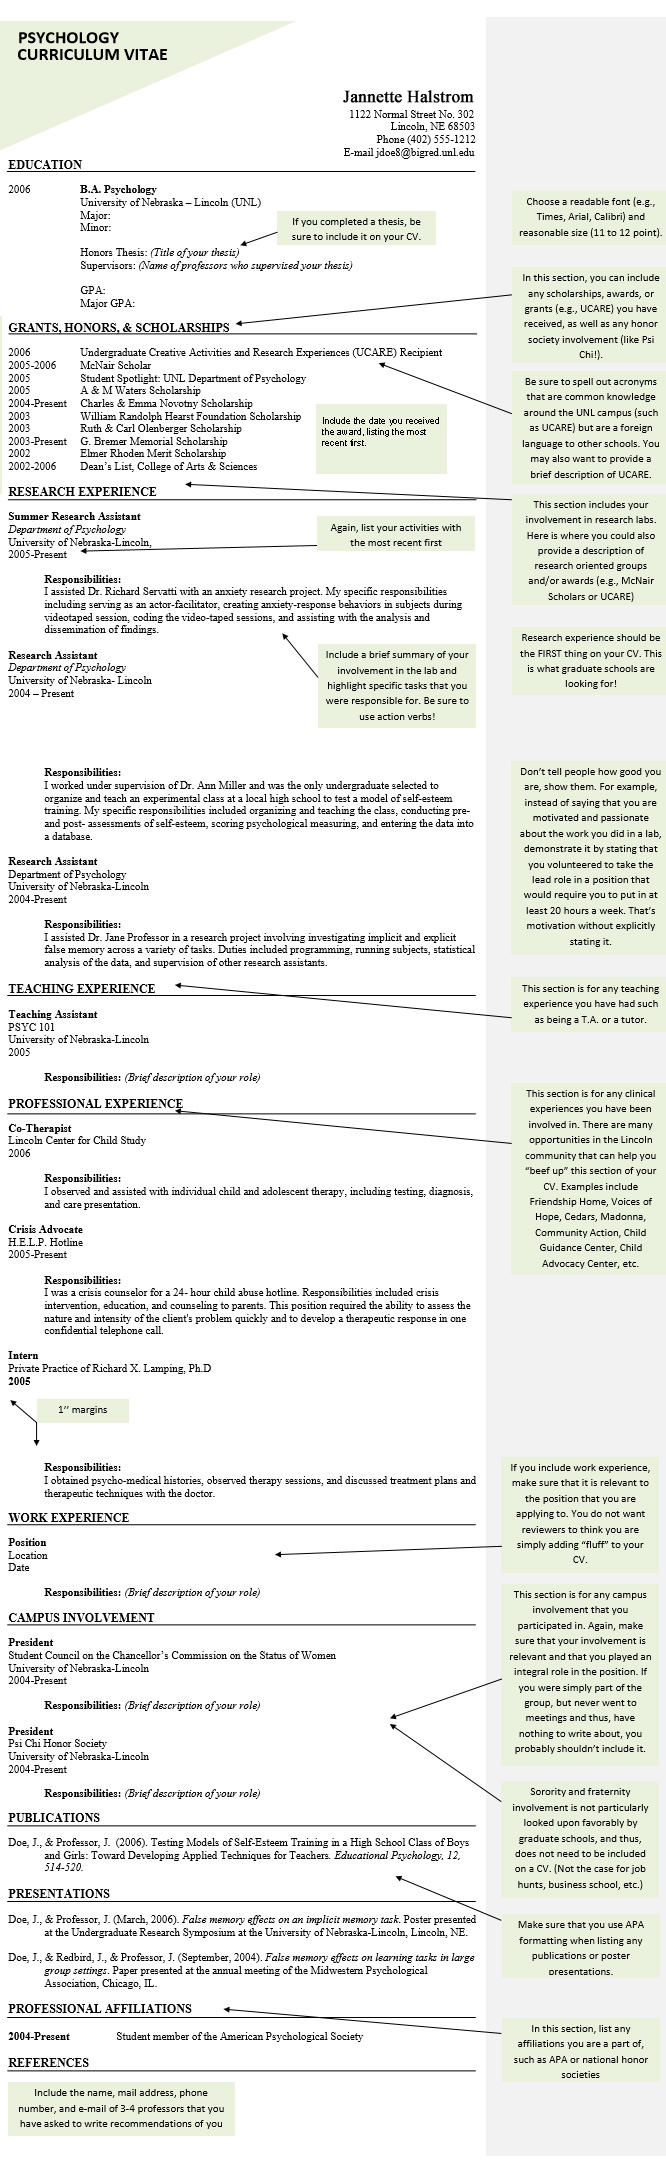 Psychology Cv And Resume Samples Templates And Tips